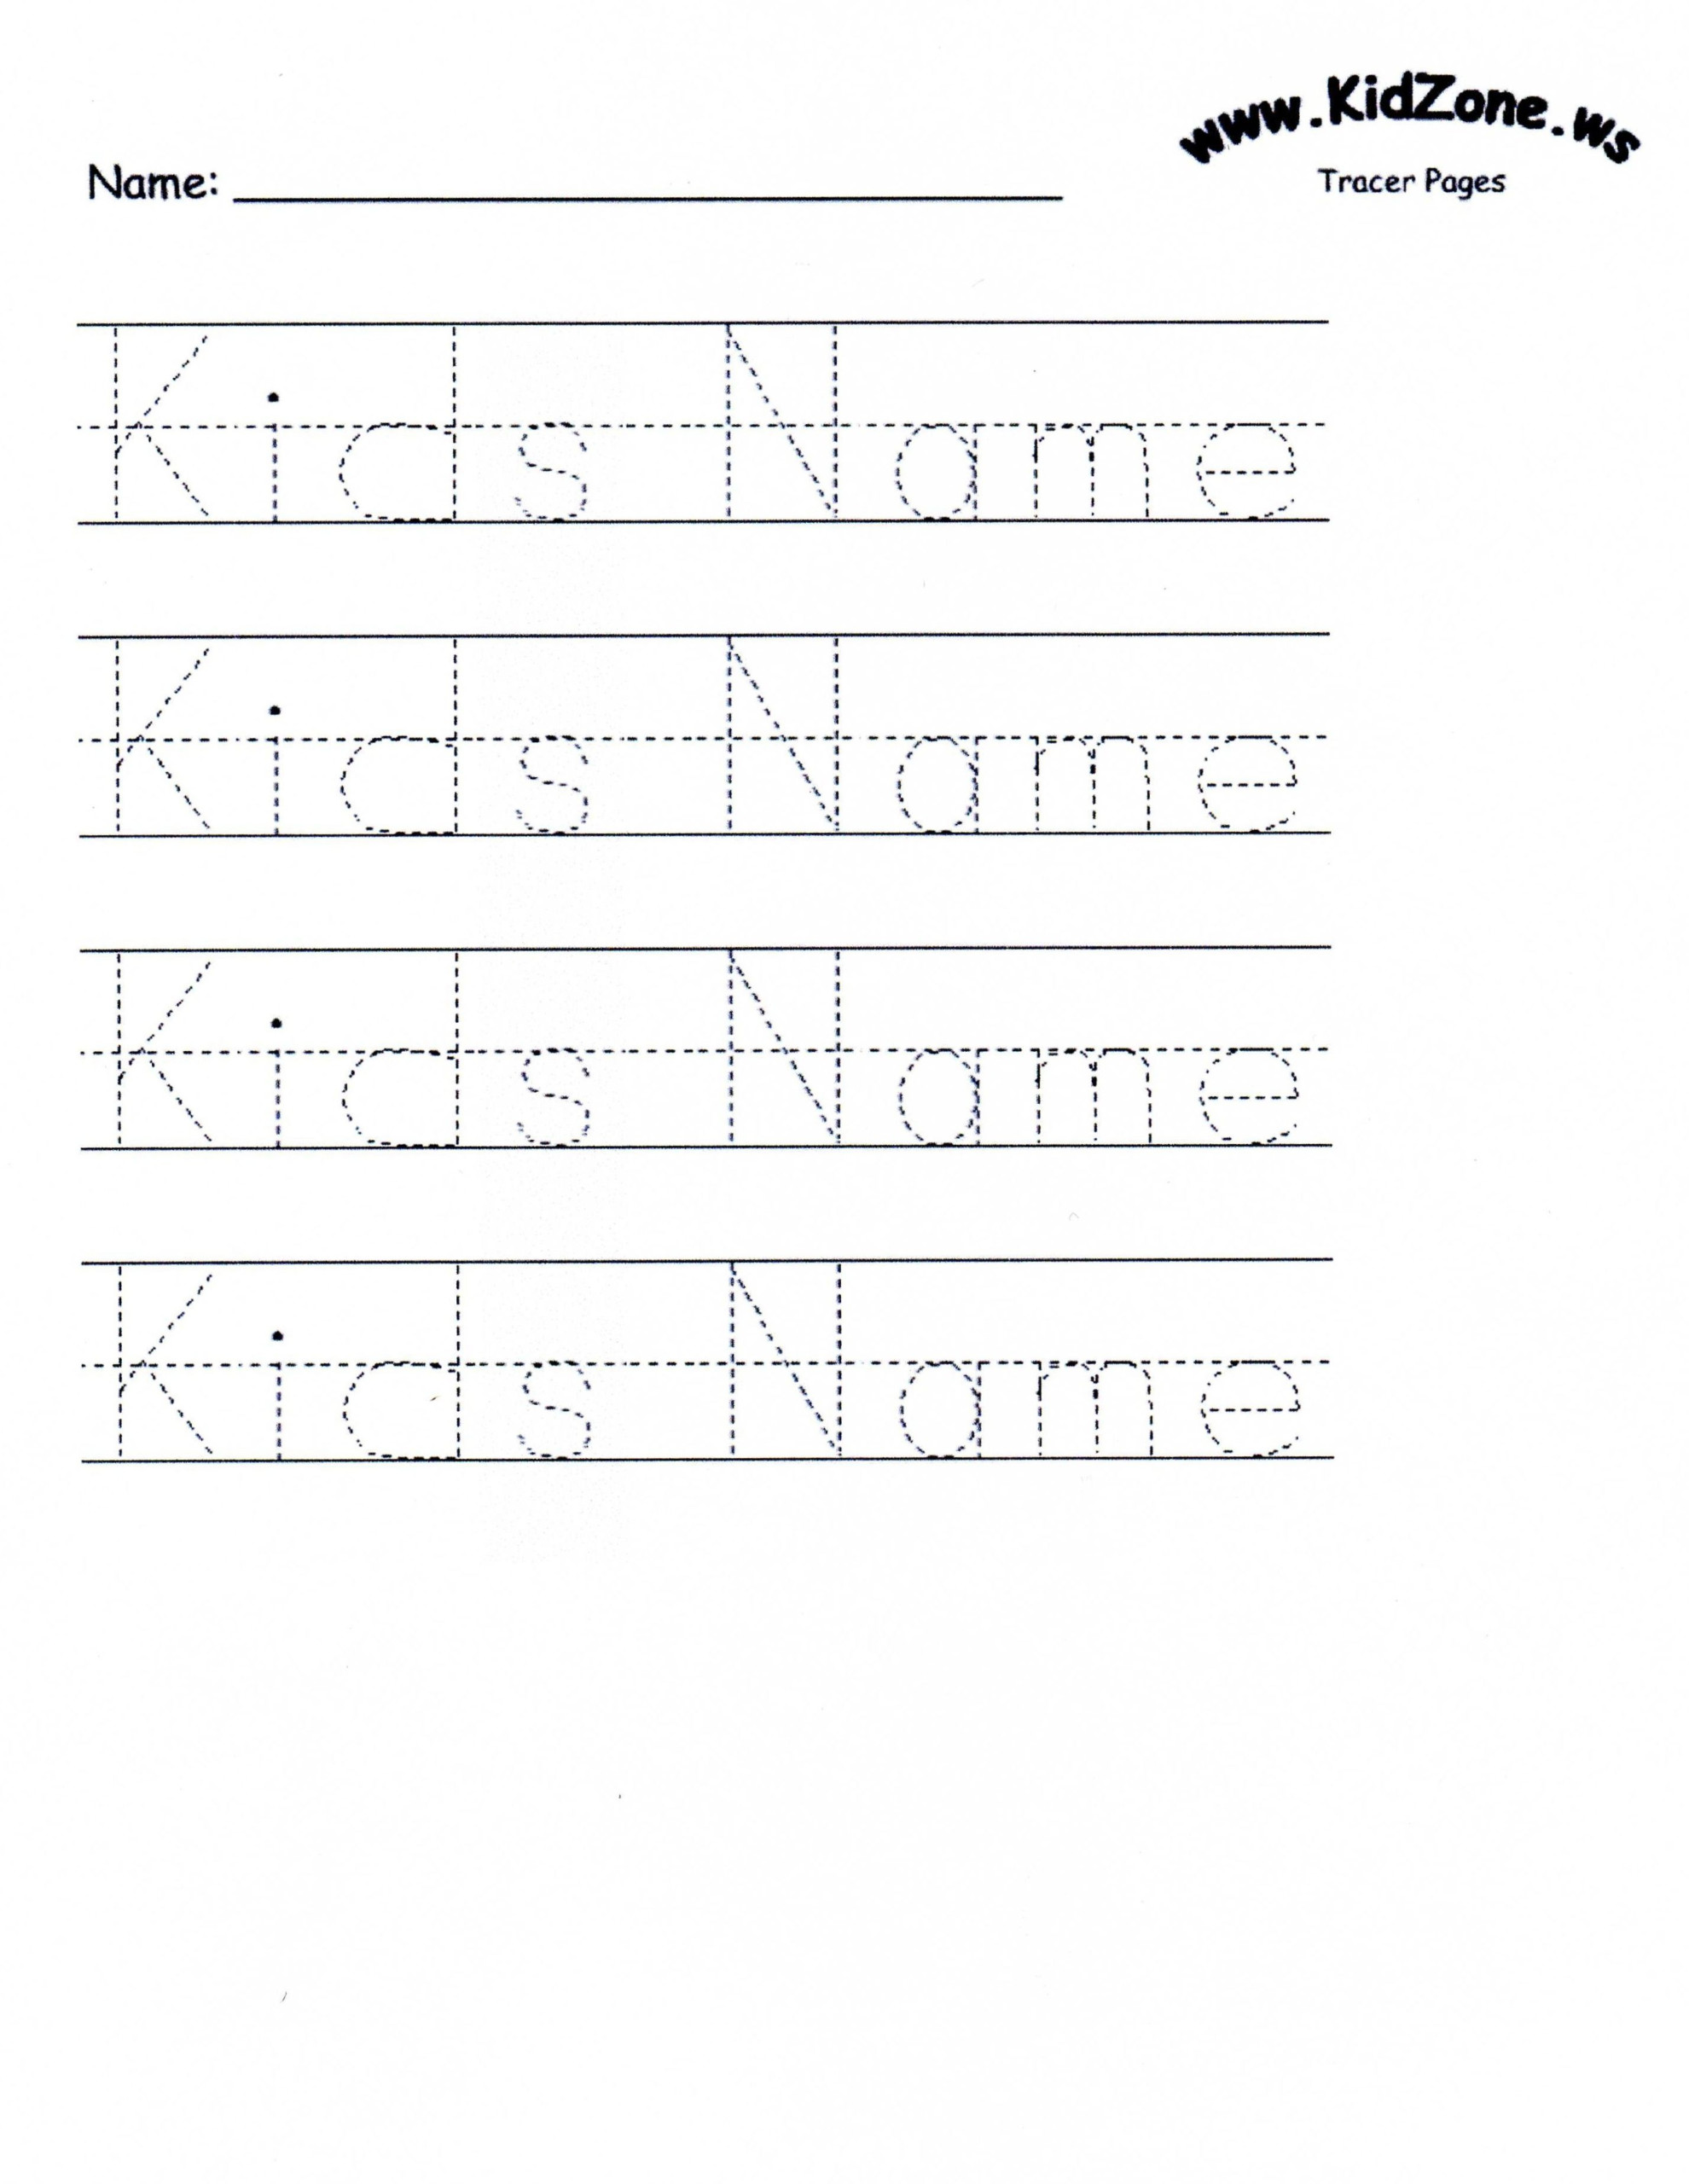 Custom Tracer Pages | Name Tracing Worksheets, Tracing